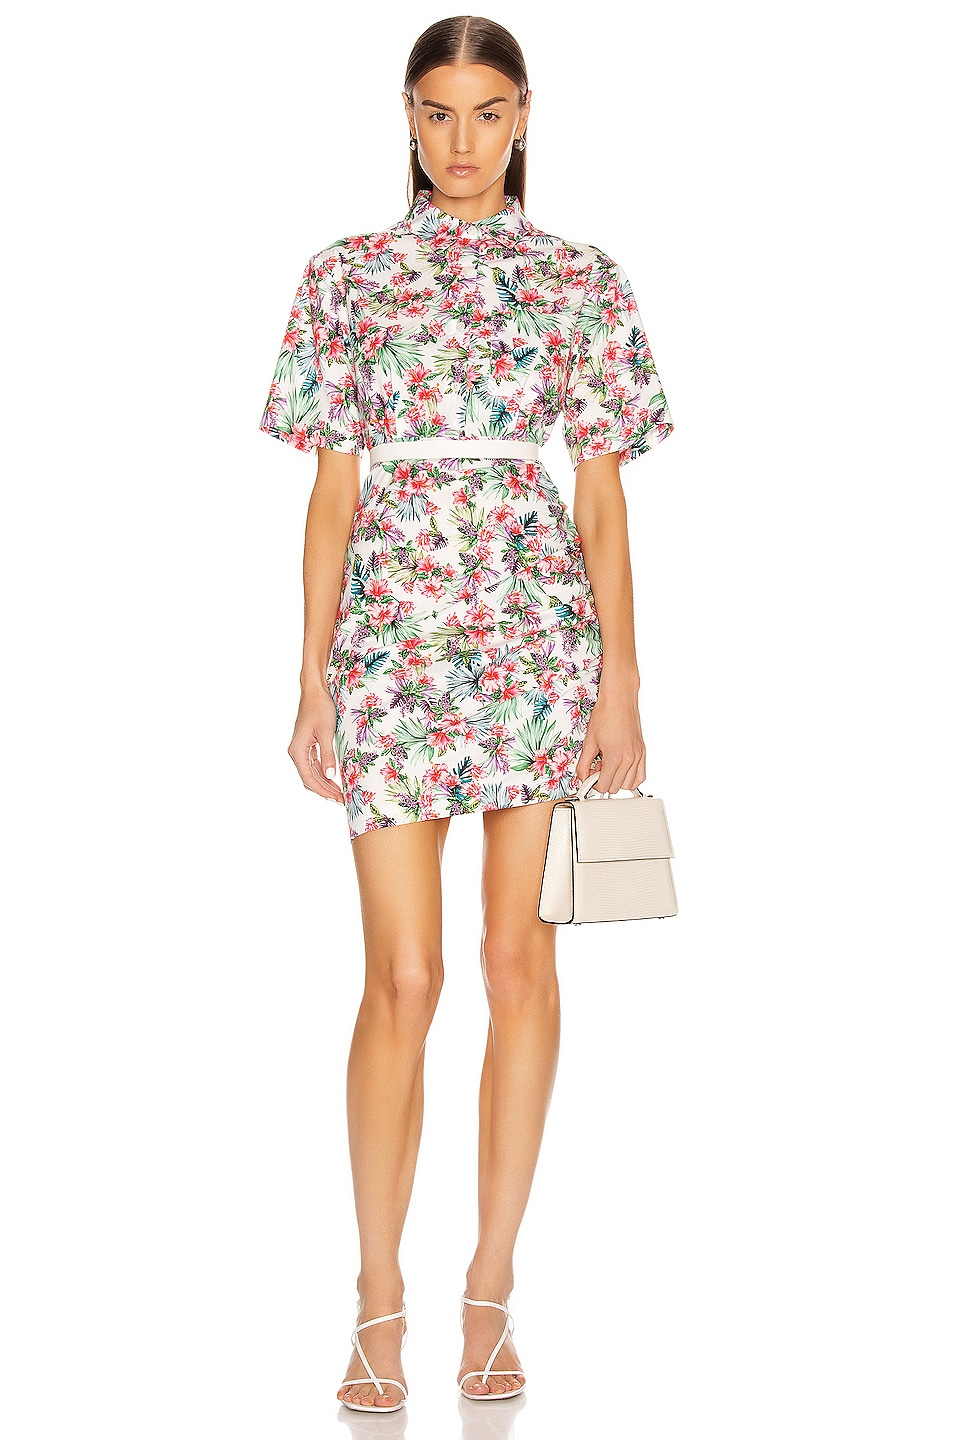 Image 2 of Les Reveries Ruched Skirt Cotton Shirt Dress in Hibiscus White